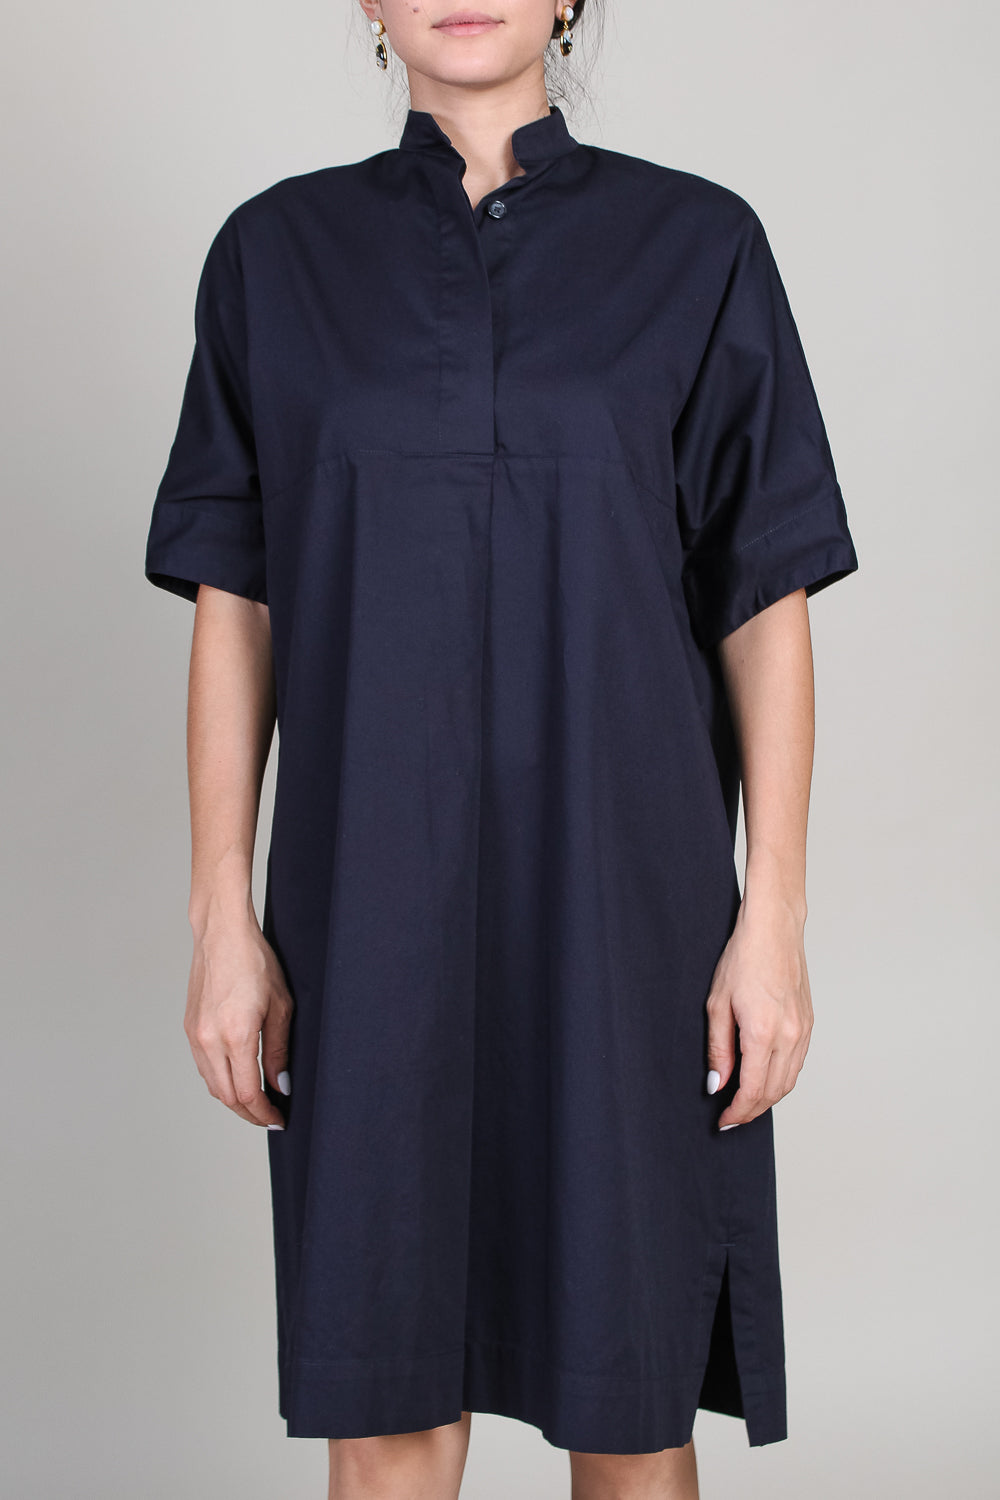 Banded Collar Shirt Dress in Ink